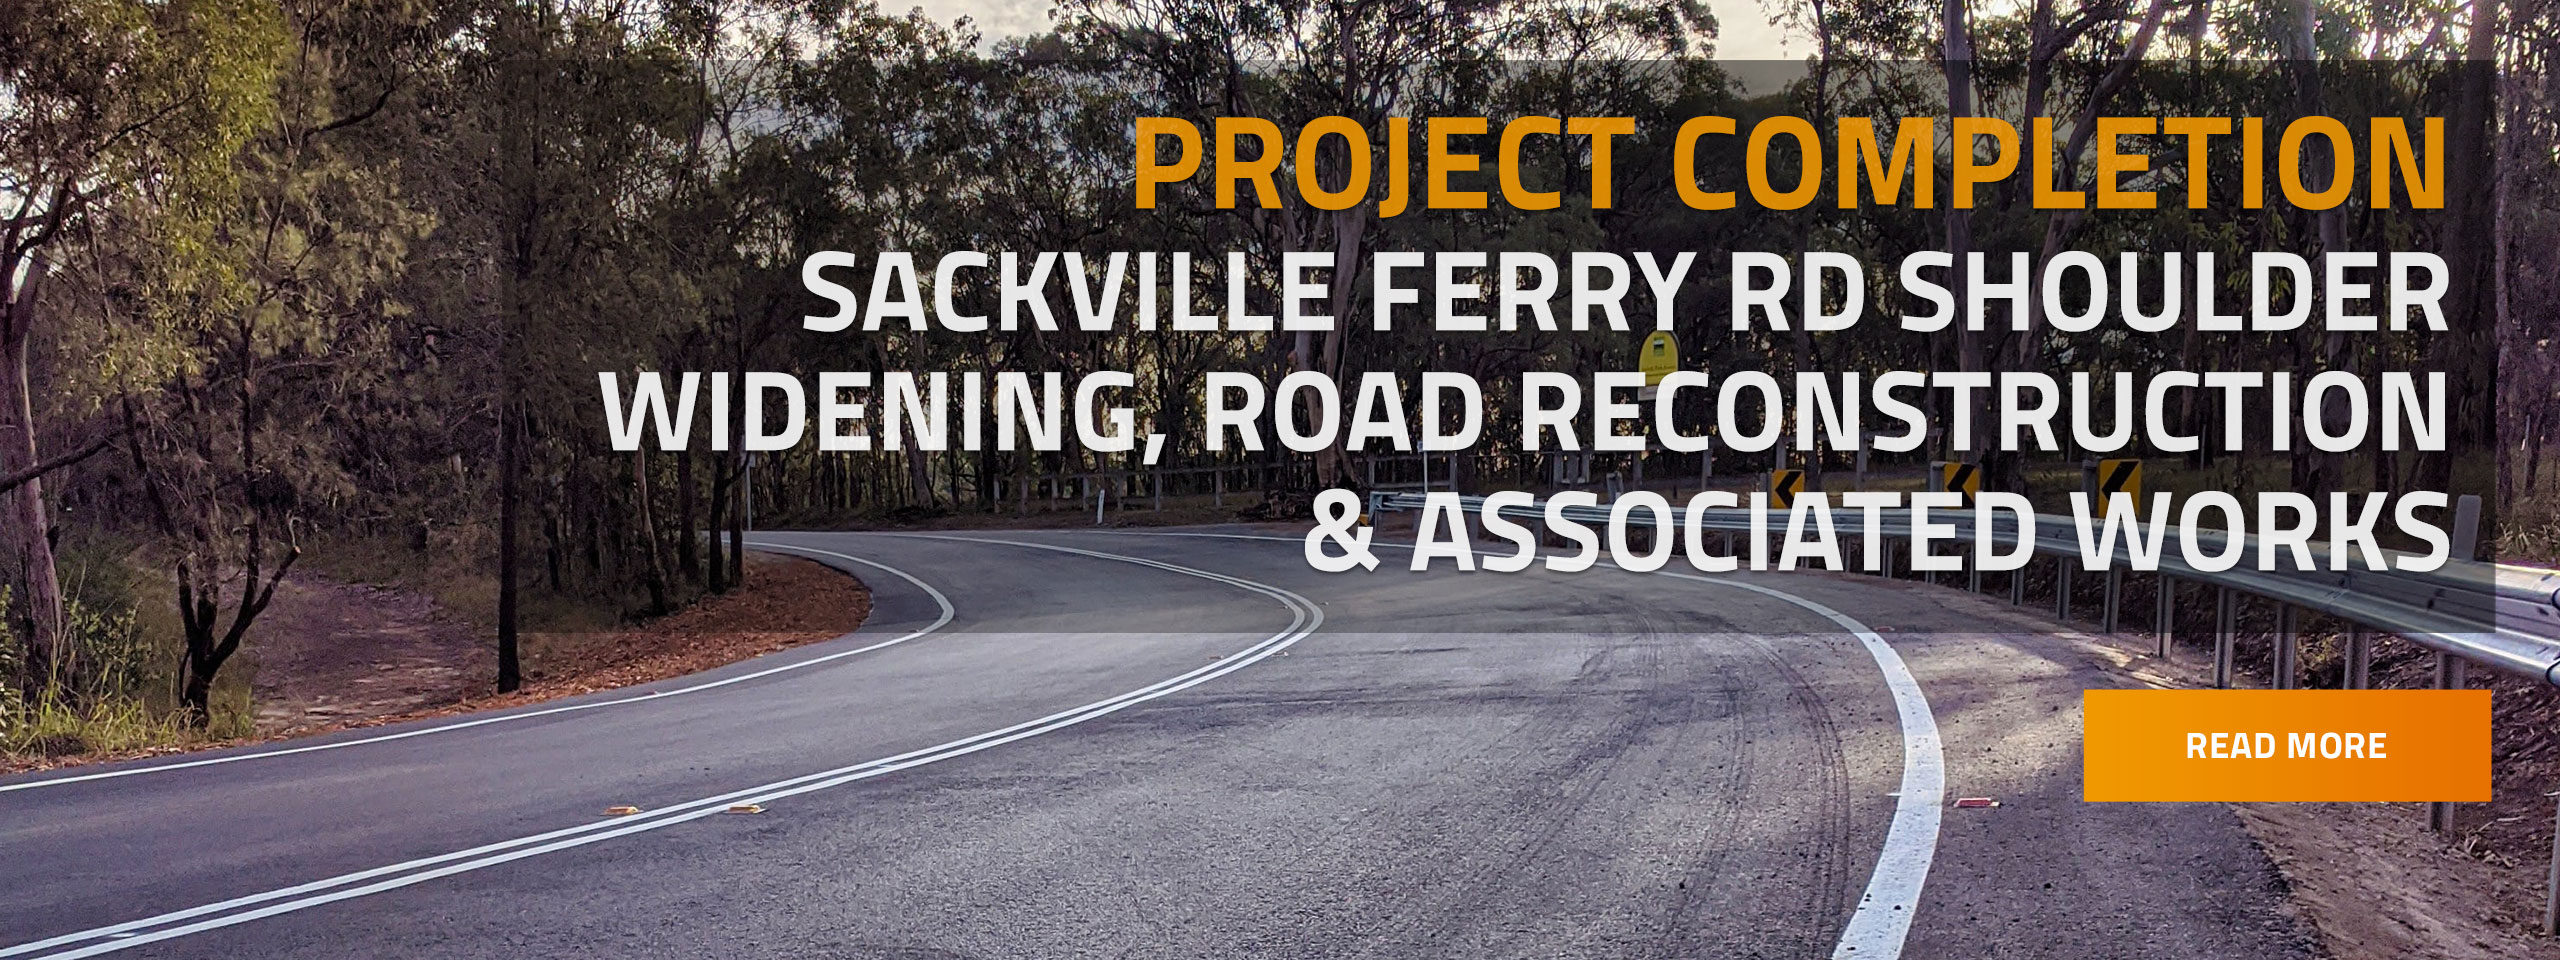 completion-of-sackville-ferry-rd-shoulder-widening-road-reconstruction-associated-works